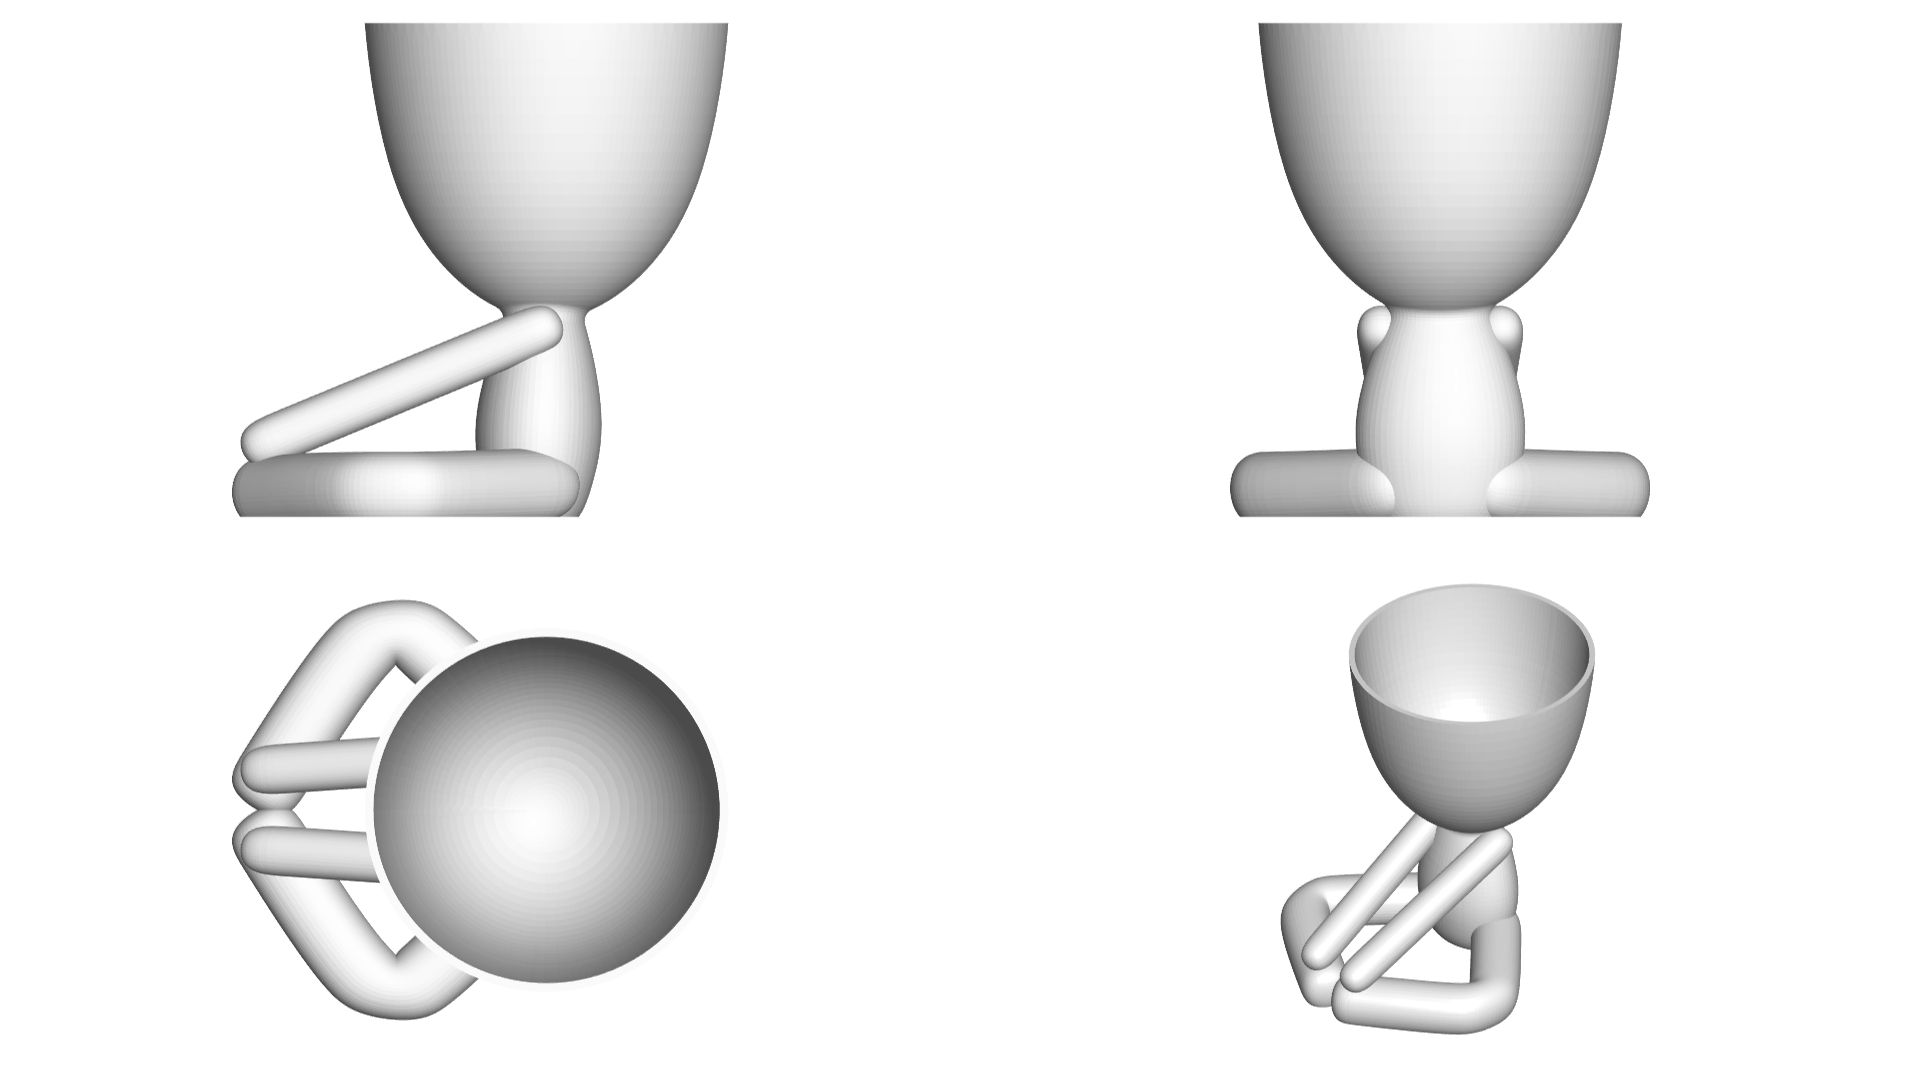 Vaso_12_Blanco_2.jpg Download free STL file YOGA ESTIRANDO JARRÓN MACETA ROBERT 12 -  YOGA STRETCHING VASE FLOWERPOT ROBERT 12 • Template to 3D print, PRODUSTL56